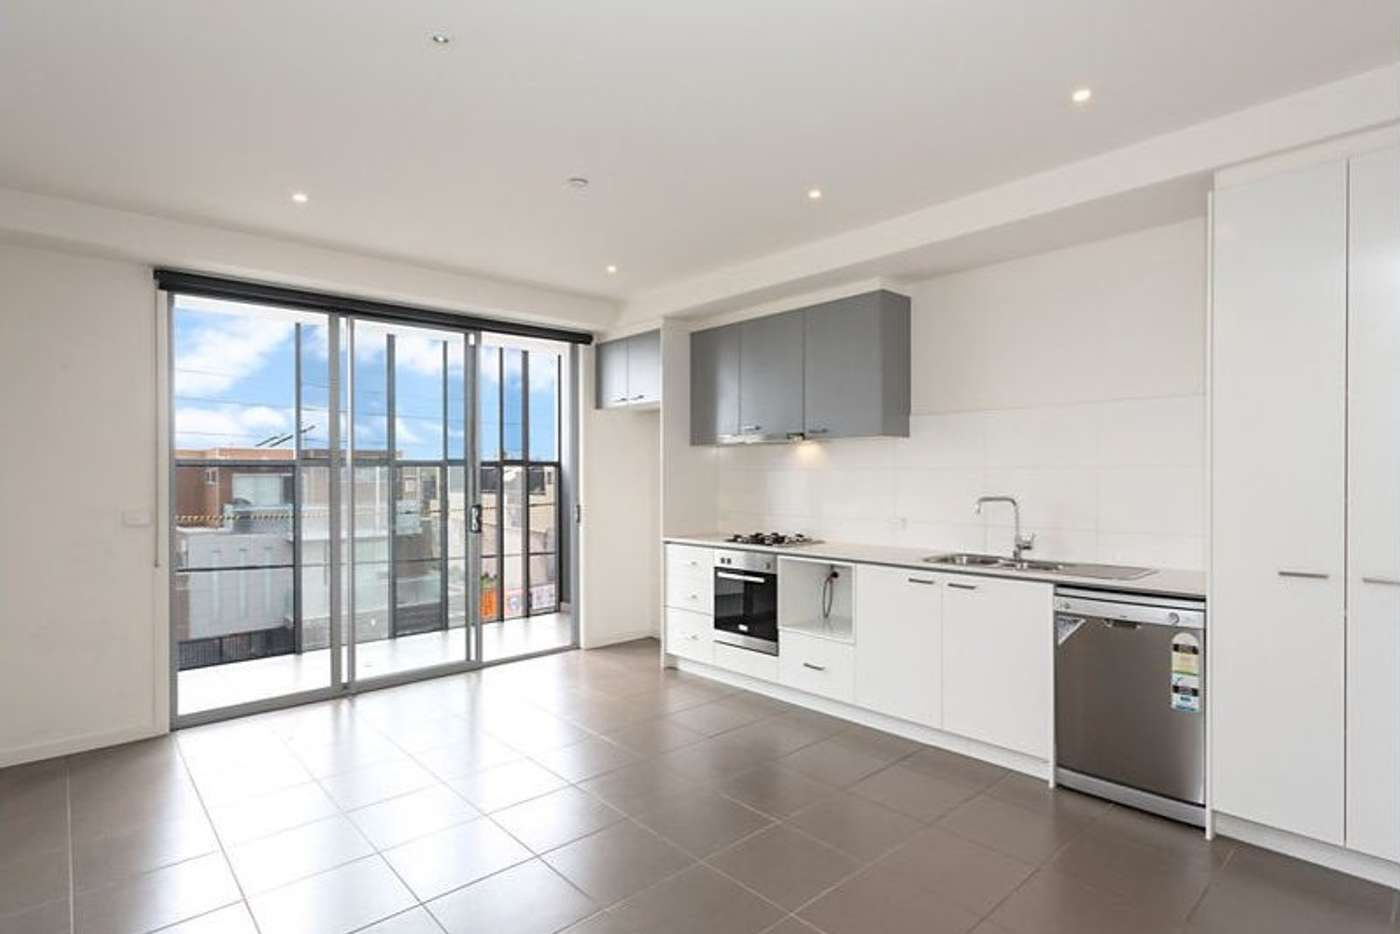 Main view of Homely apartment listing, 8/67 Nicholson Street, Brunswick East VIC 3057